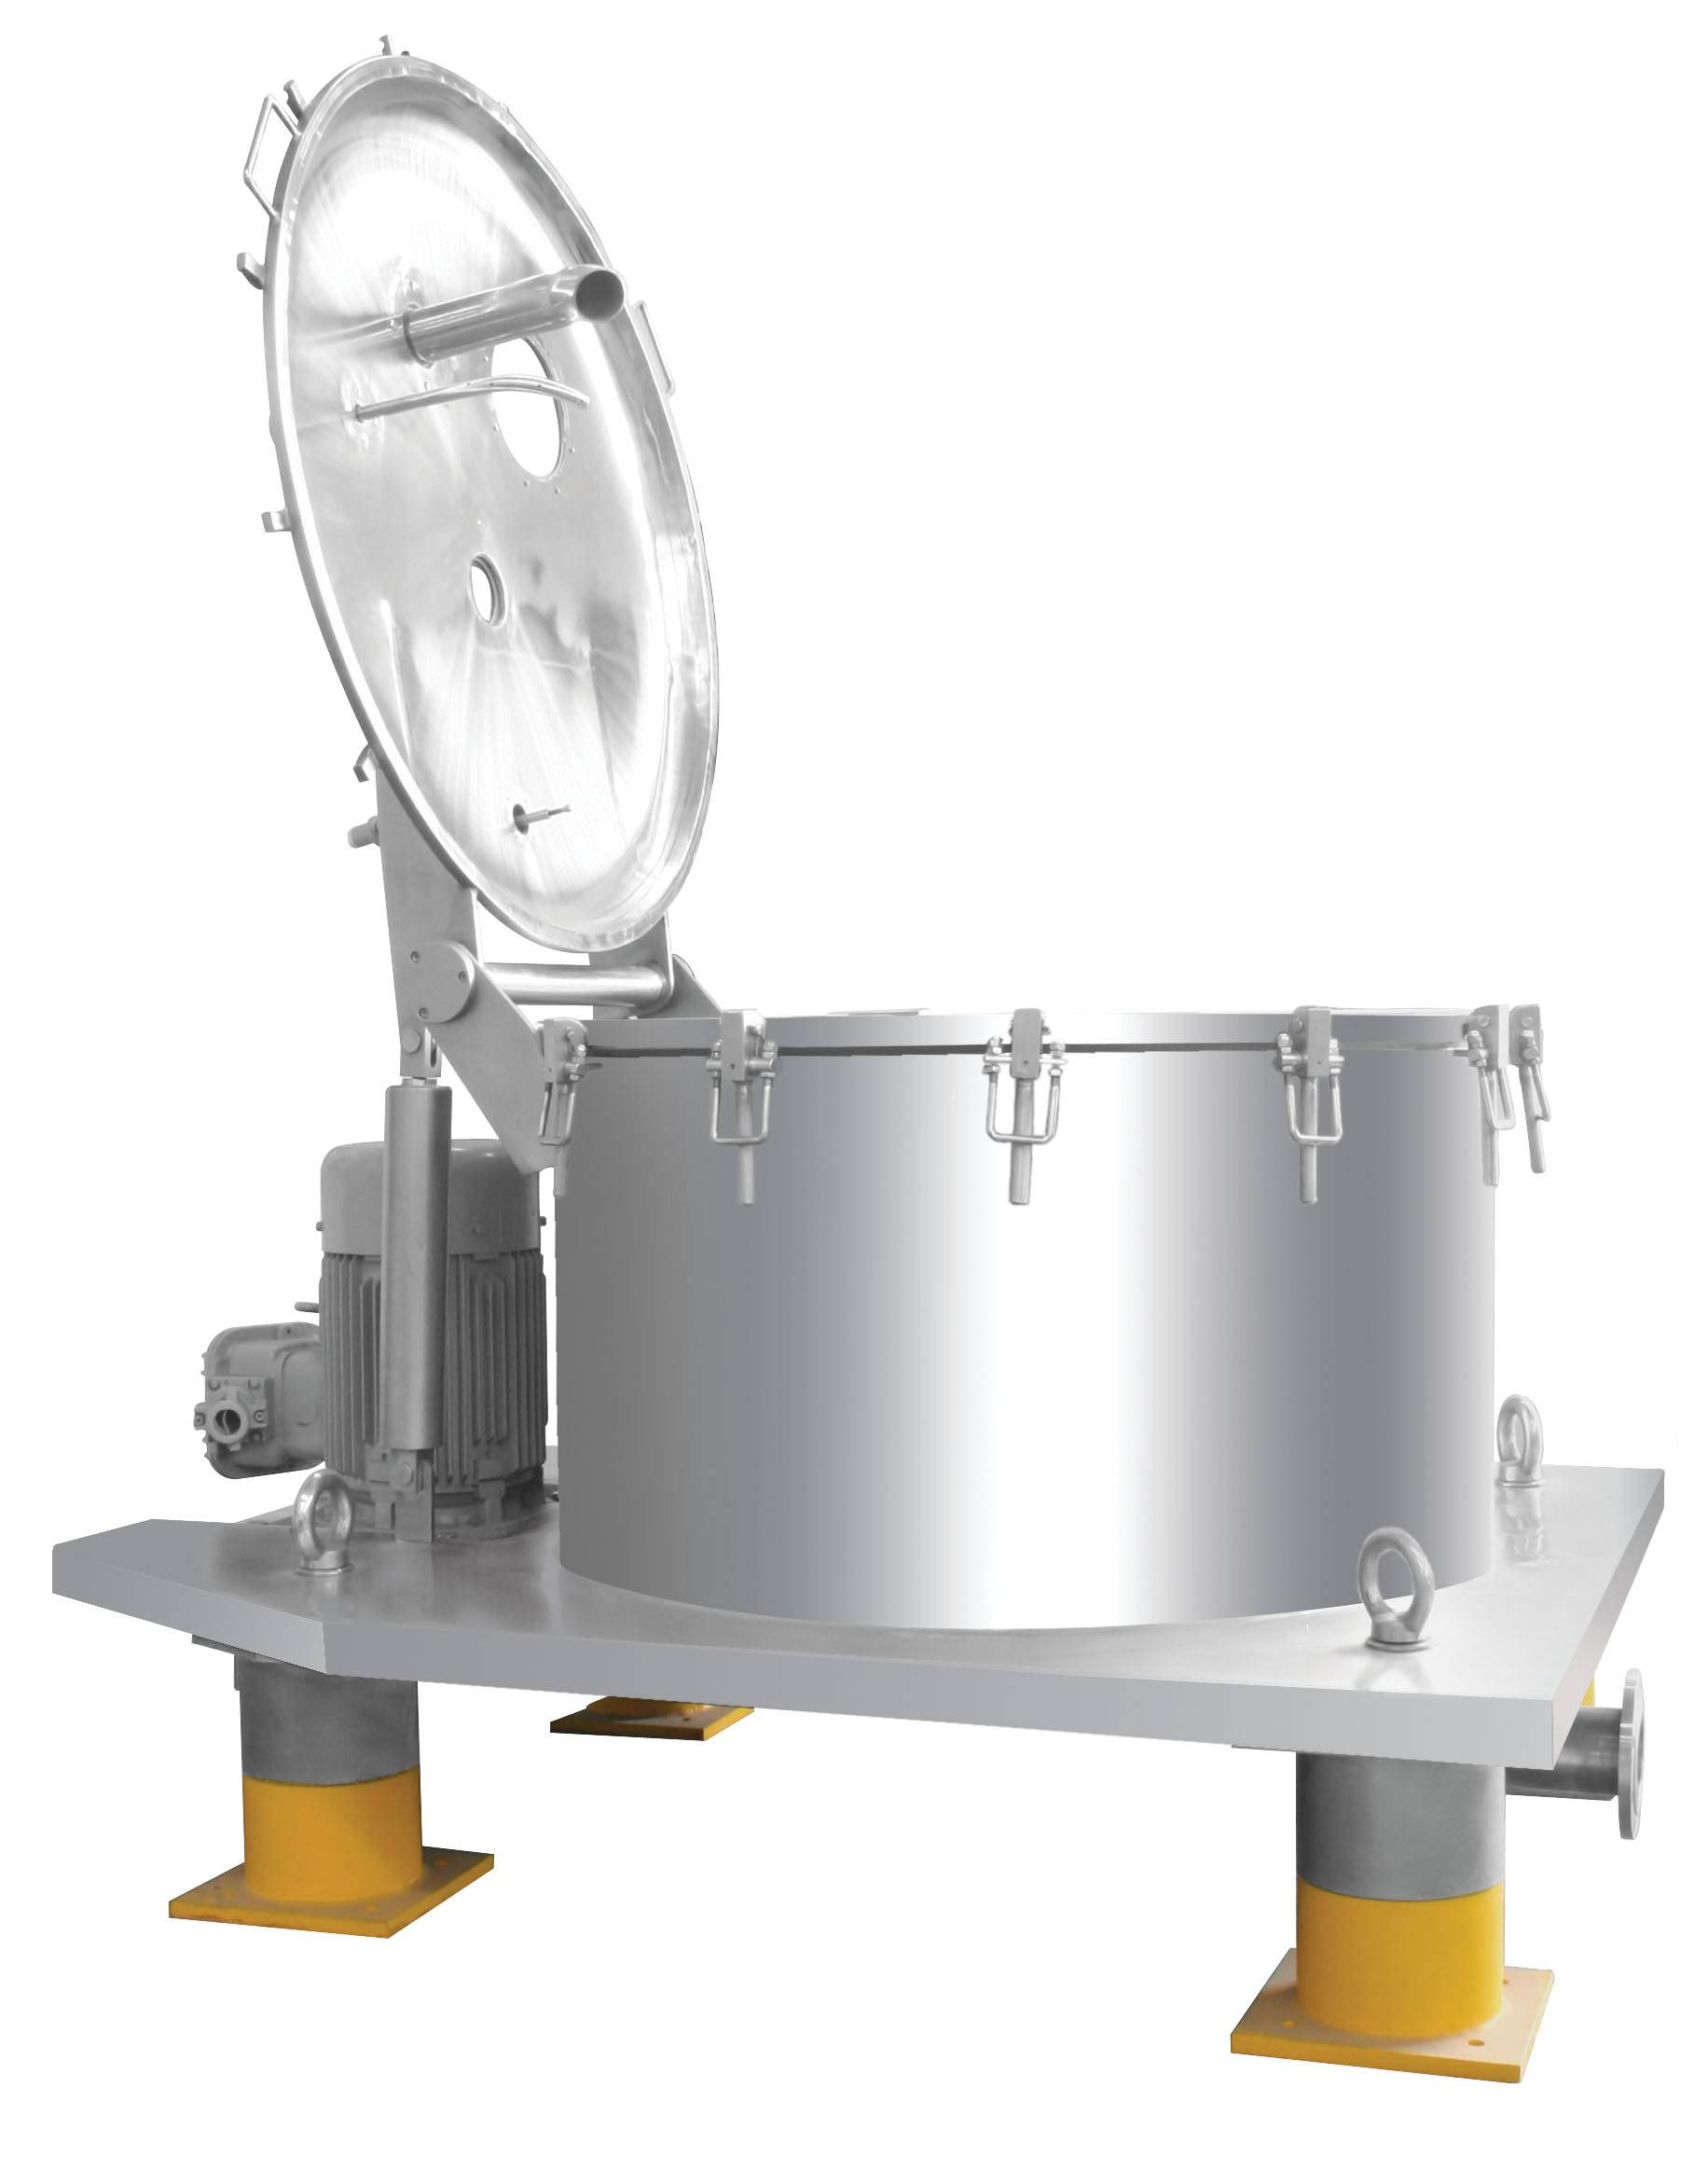 SB/LB Series Hermitical Centrifuge